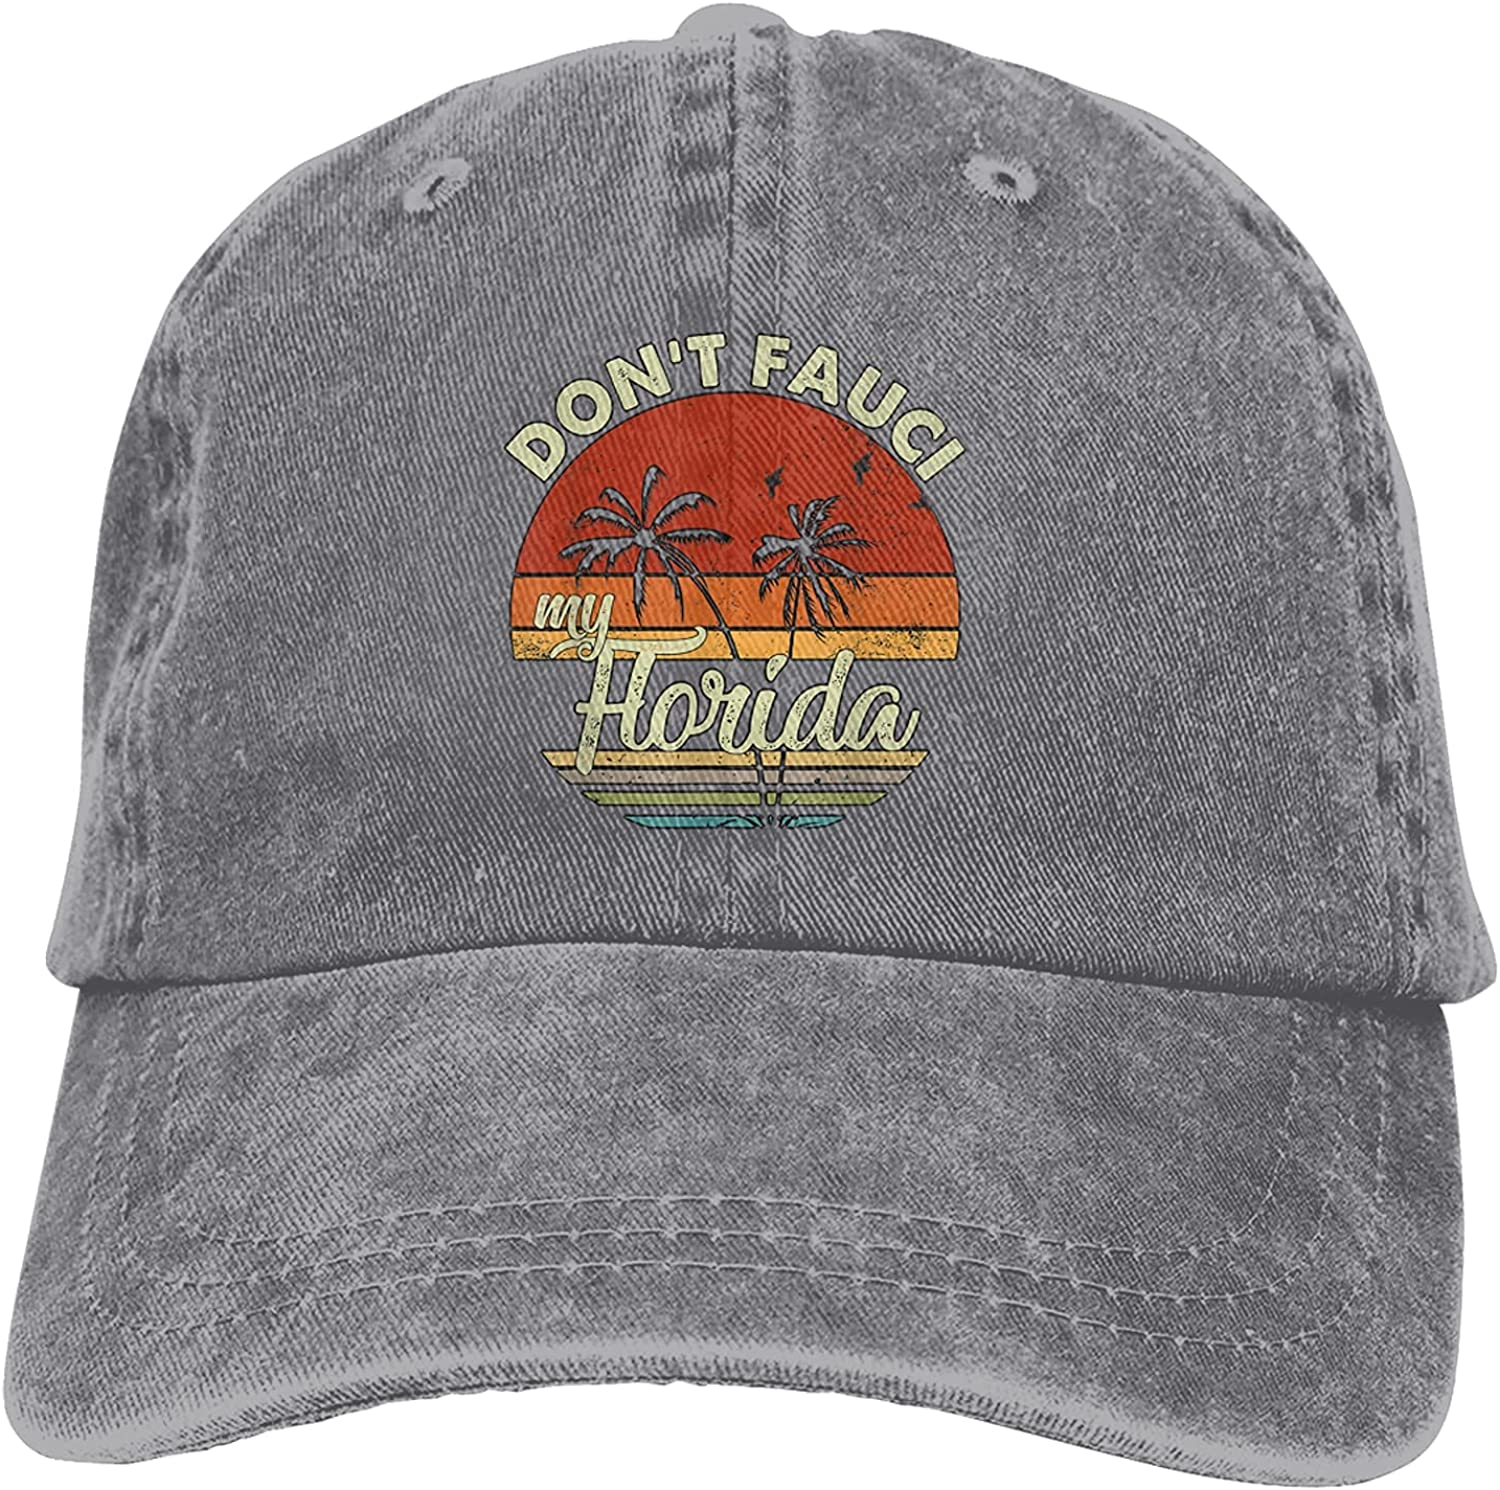 BGWORZD Don't Fauci My Florida 2024 for Patriotic Baseball Caps, Cotton Washed Cowboy Hats, Adjustable Dad Hats